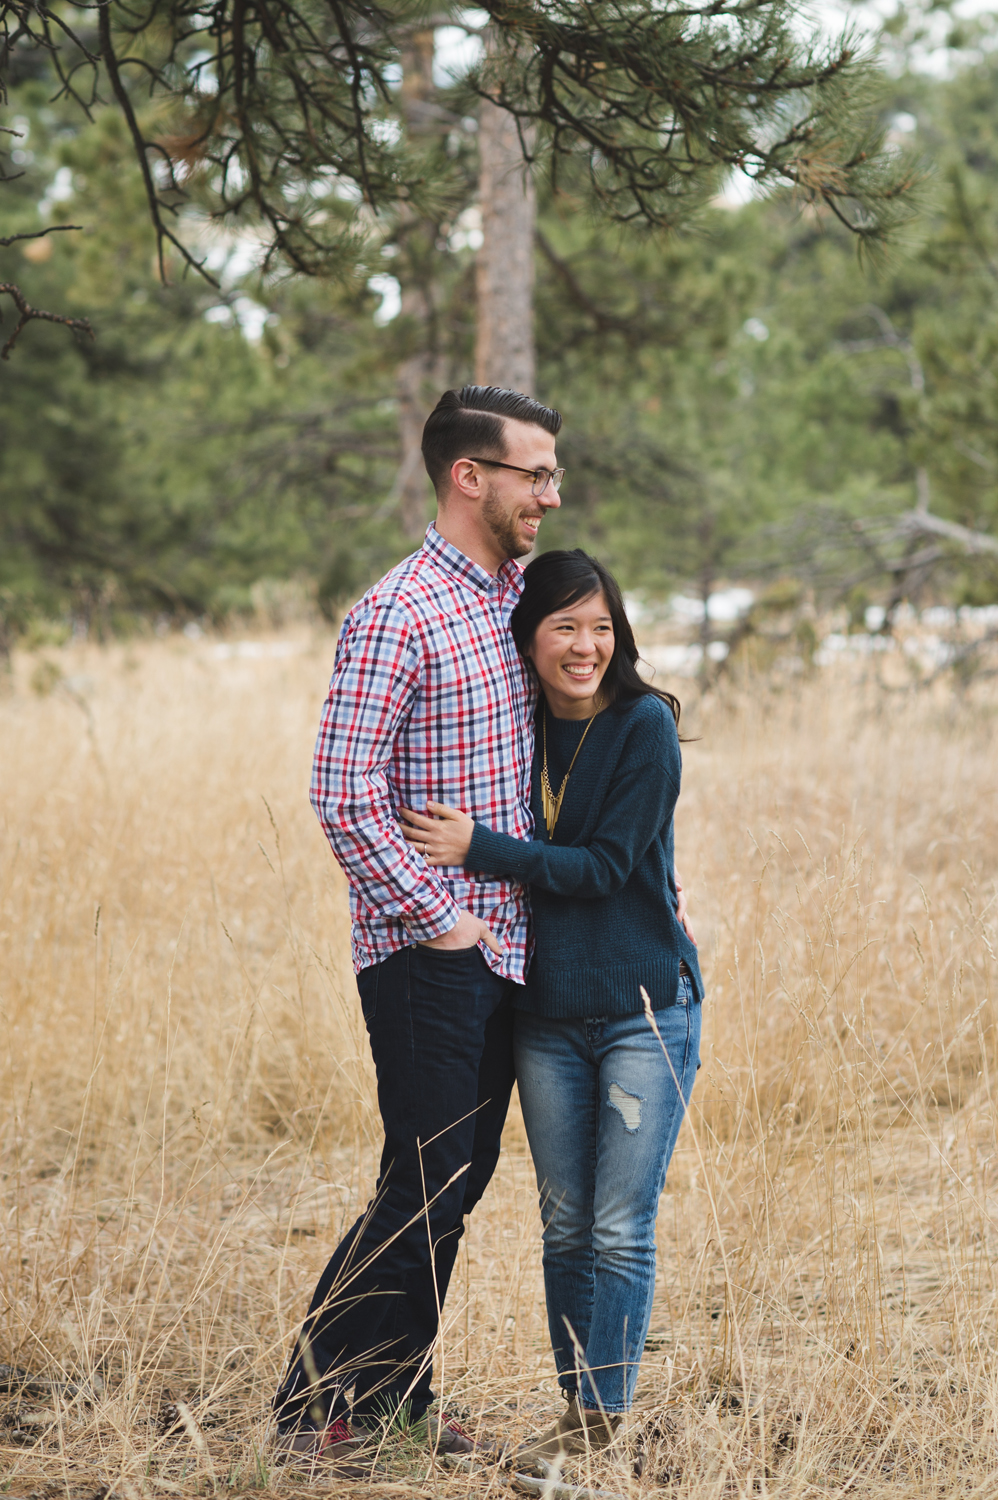 TiffanyandMark_Engaged_0057_squarespace.jpg